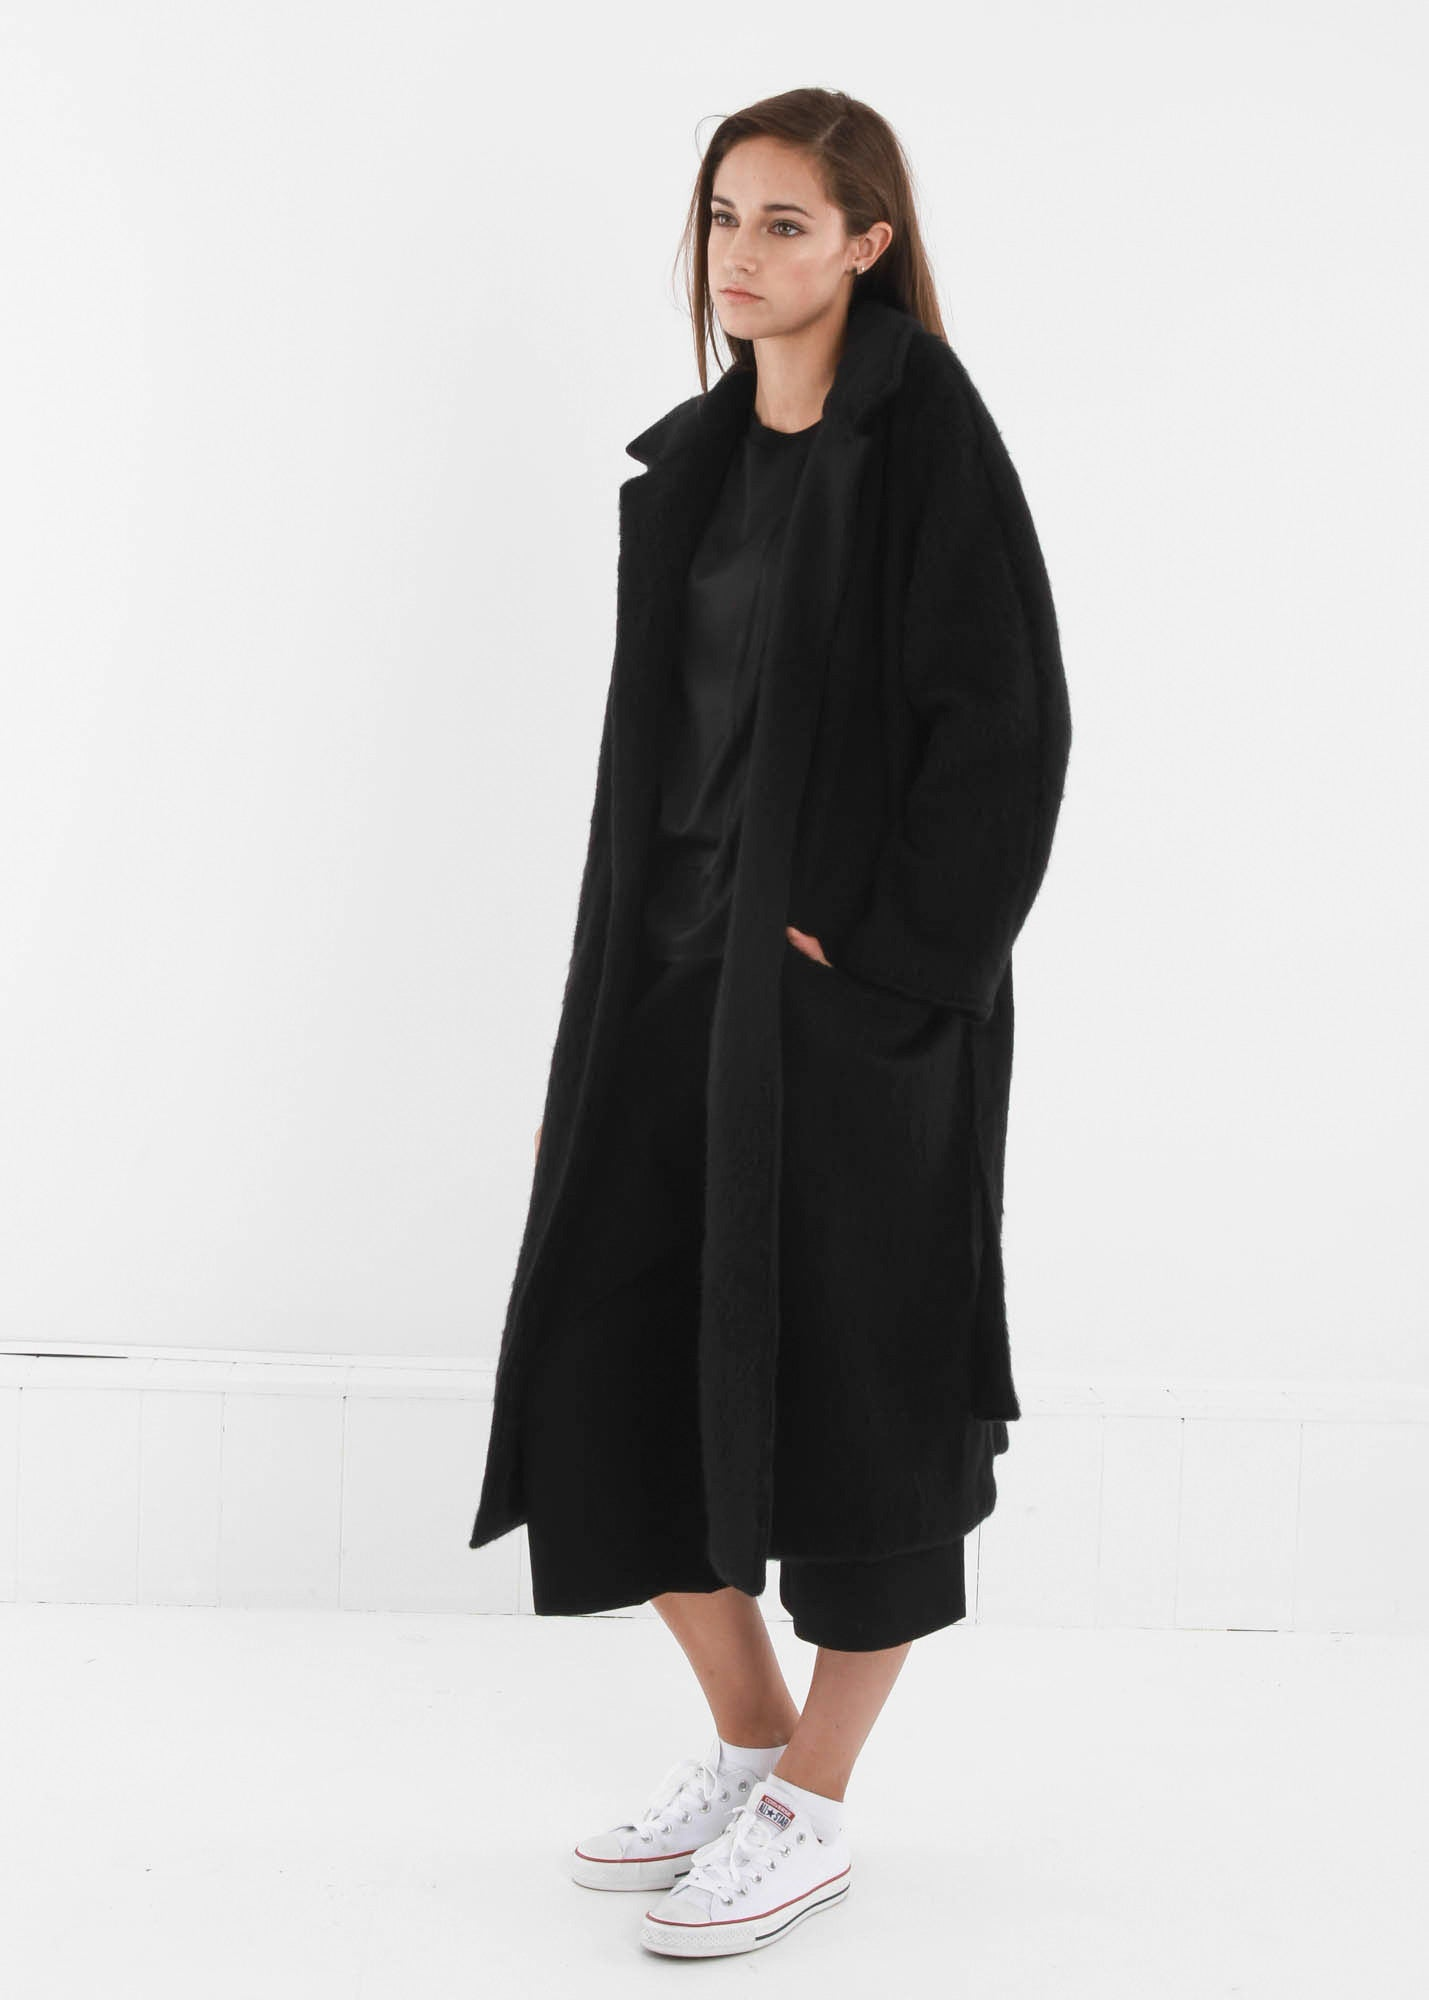 Base Range Black Pyrénées Coat - New Classics Studios  - 4